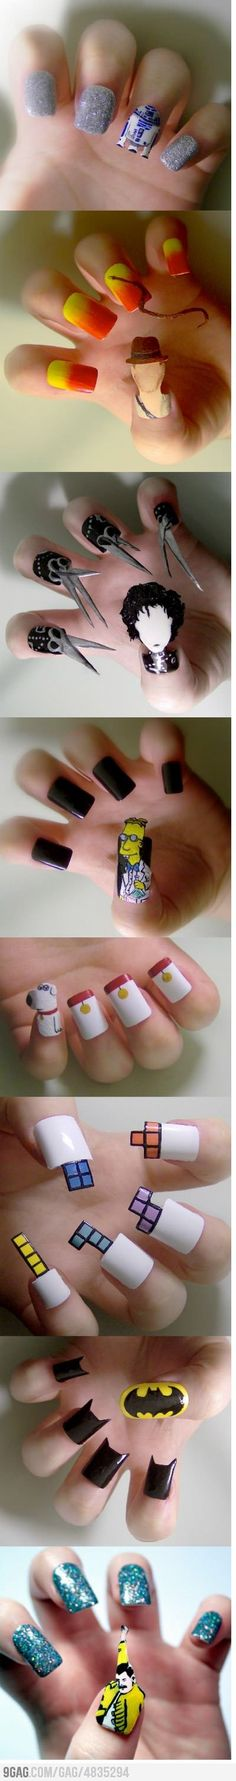 Awesome nails. so creative.